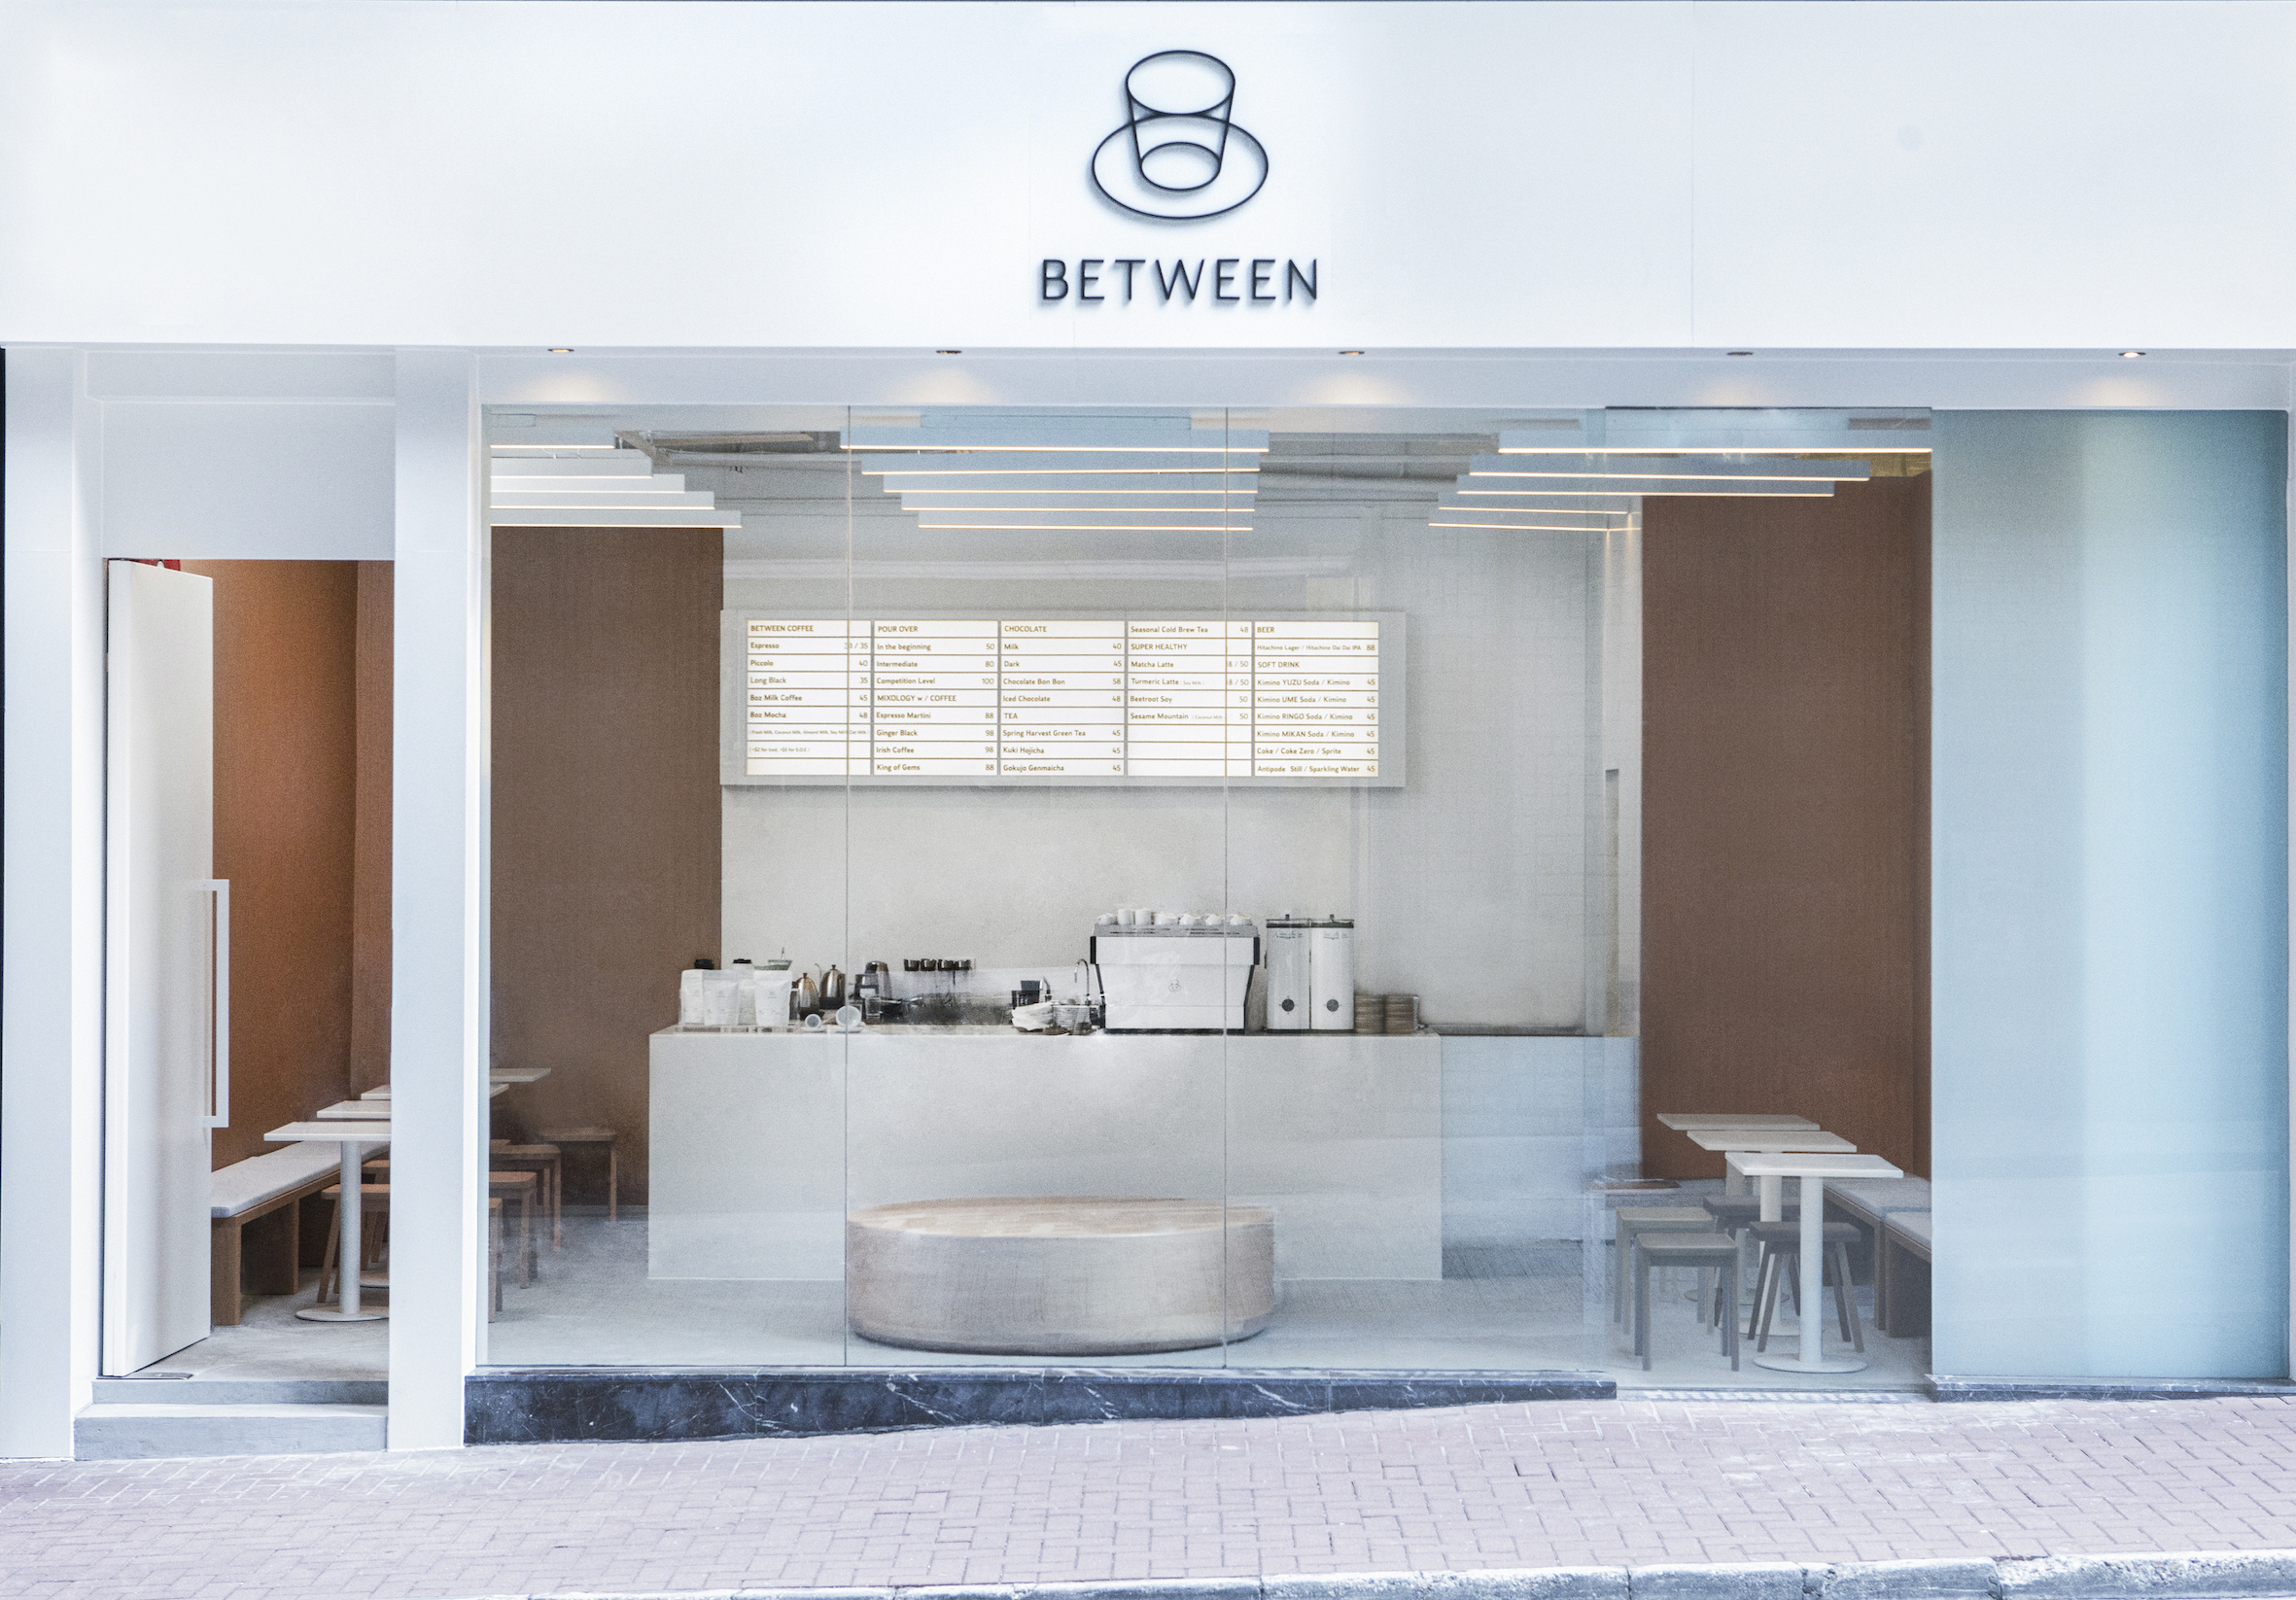 Between Coffee opens a new coffee shop in Wan Chai